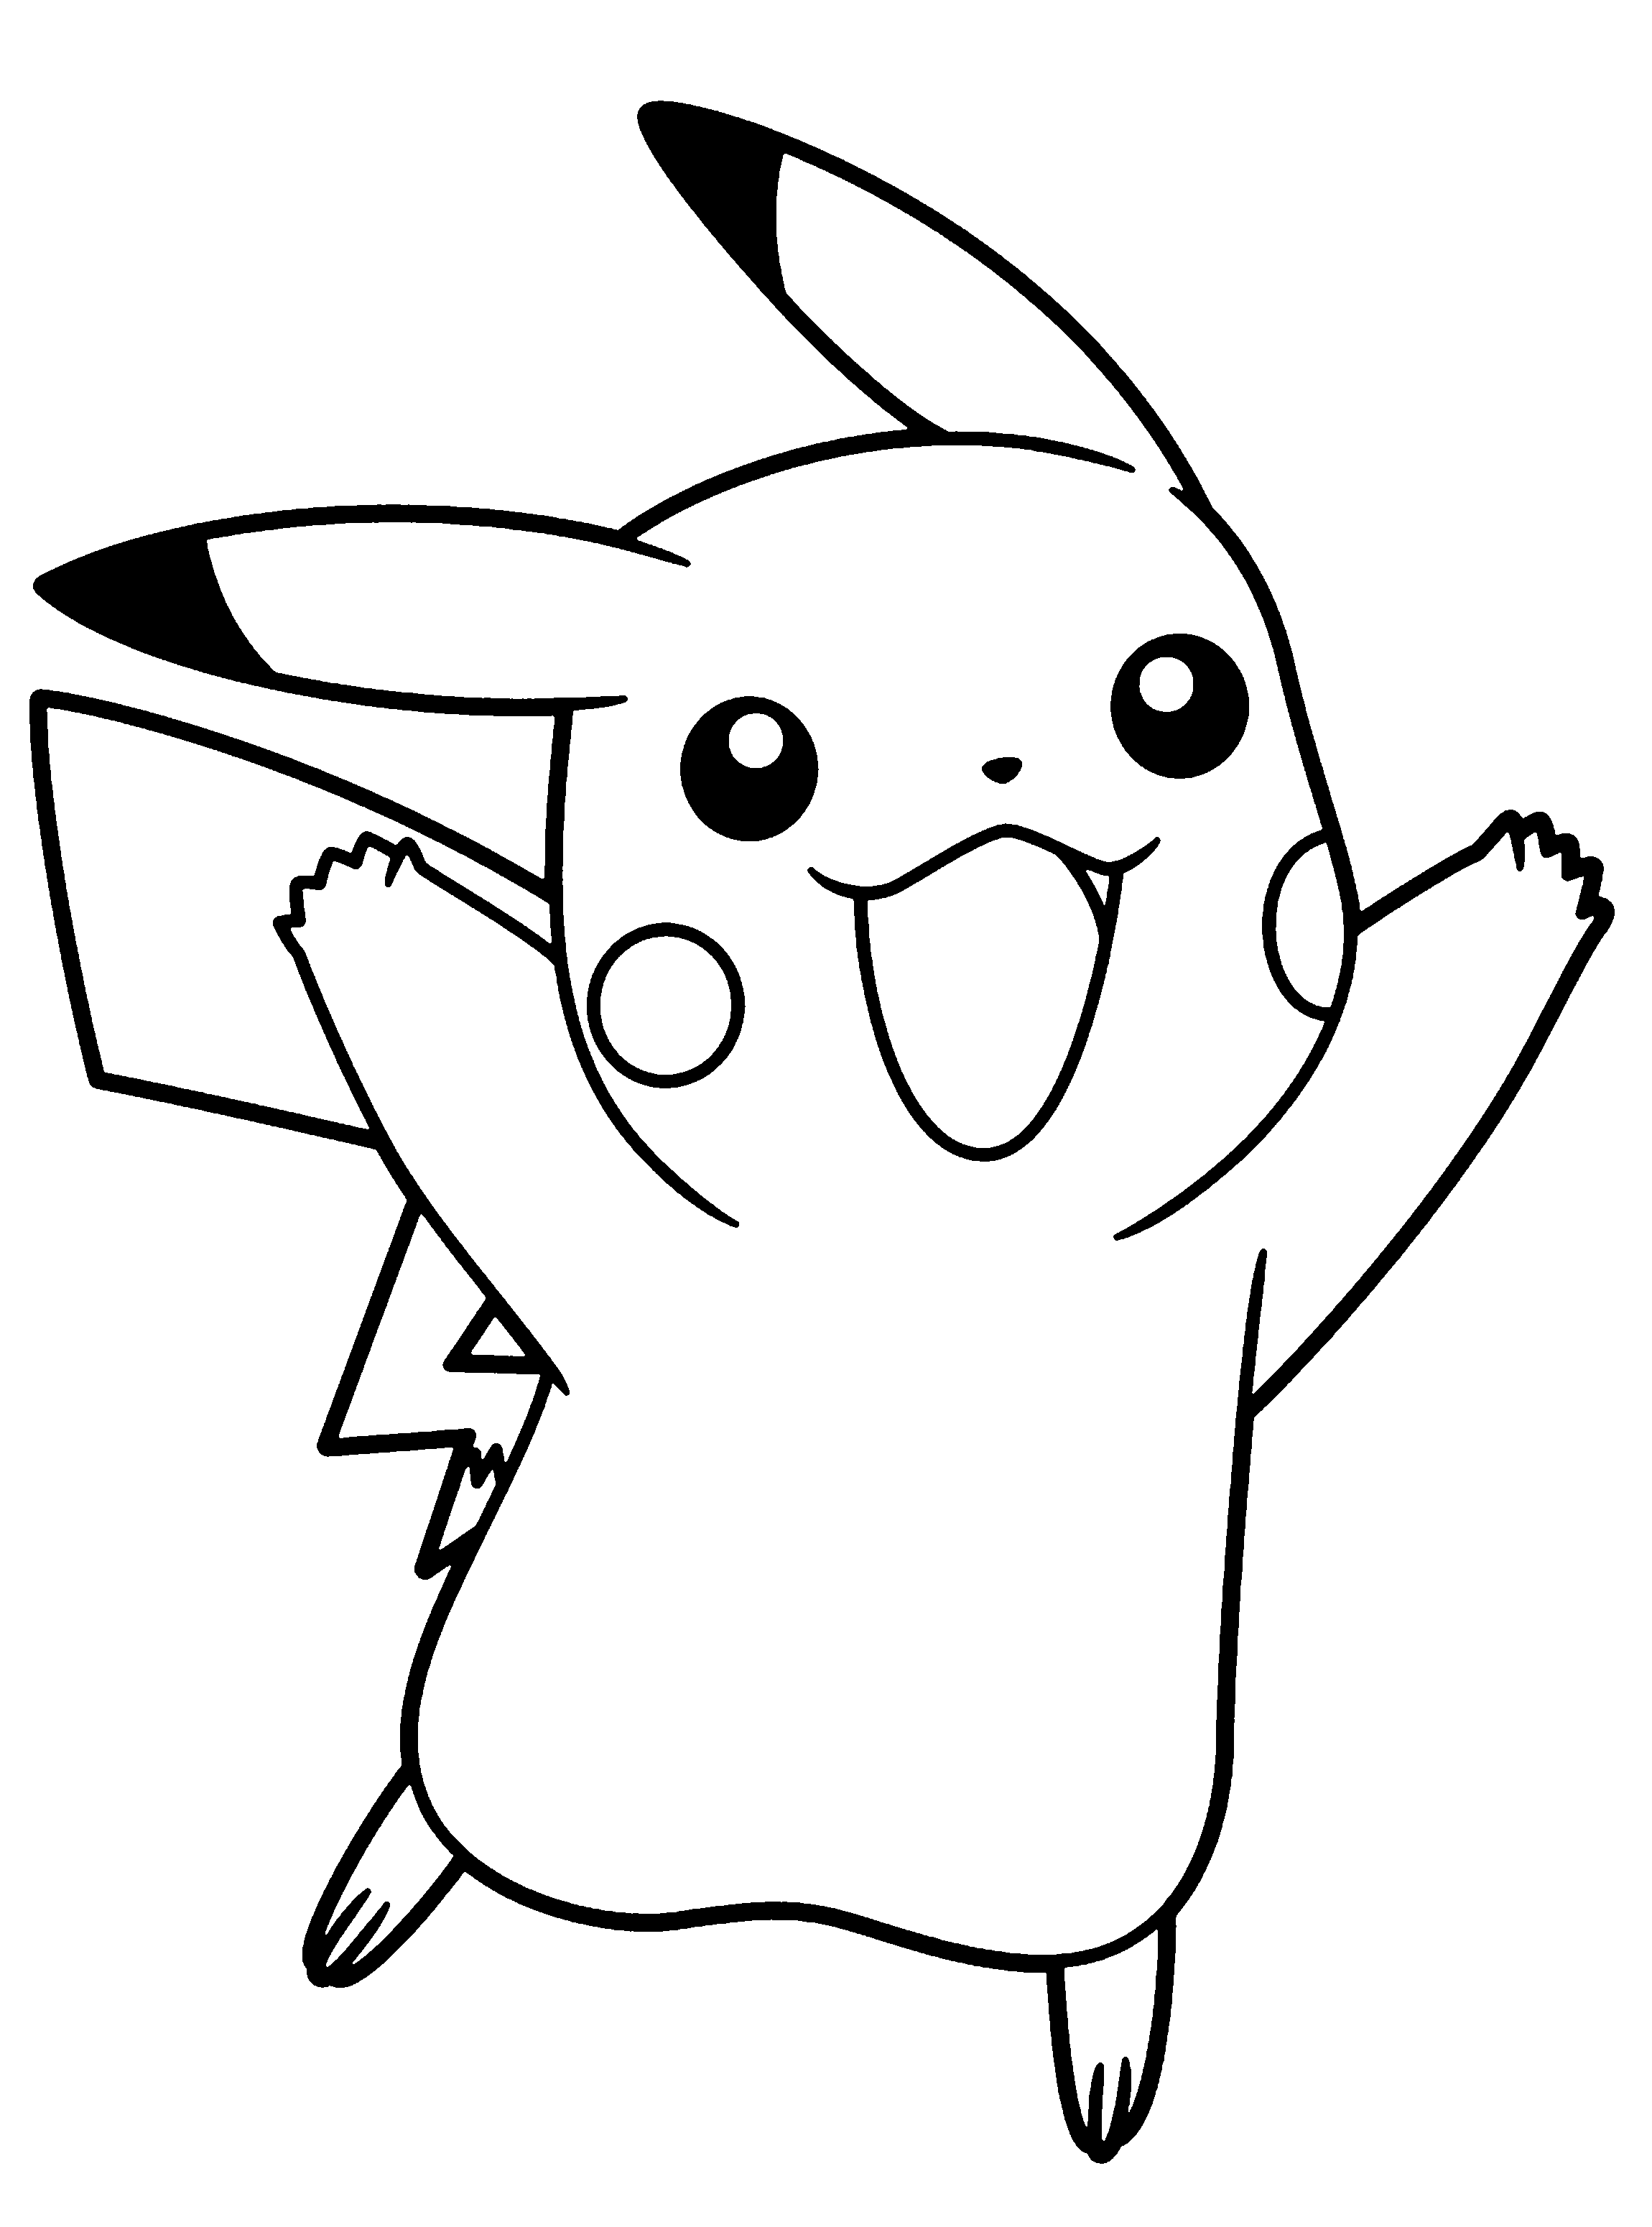 pikachu drawing coloring pages pikachu from pokémon go coloring page free printable pages drawing pikachu coloring